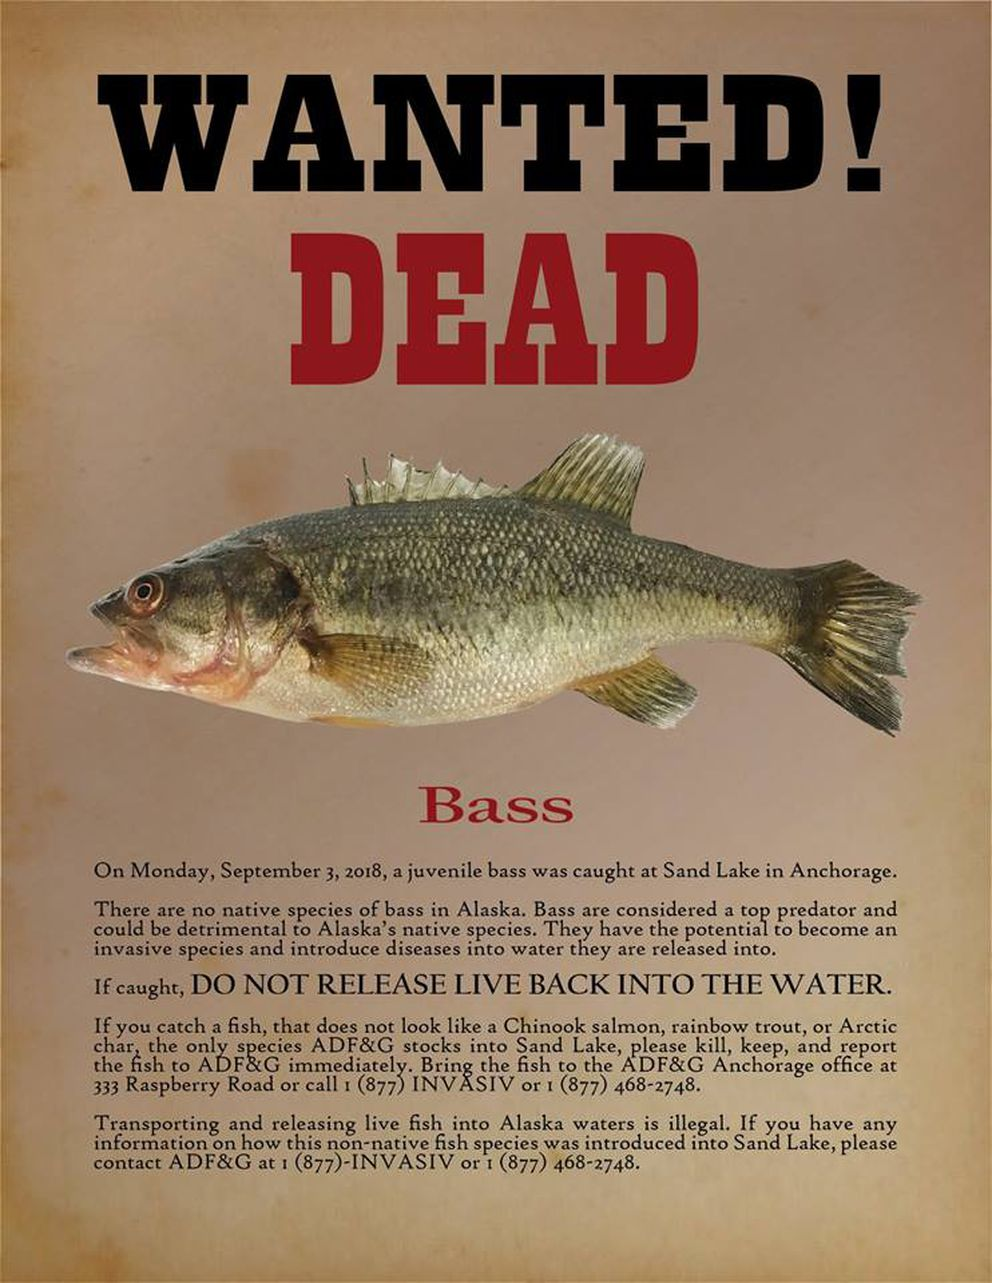 ADF&G's wanted poster.